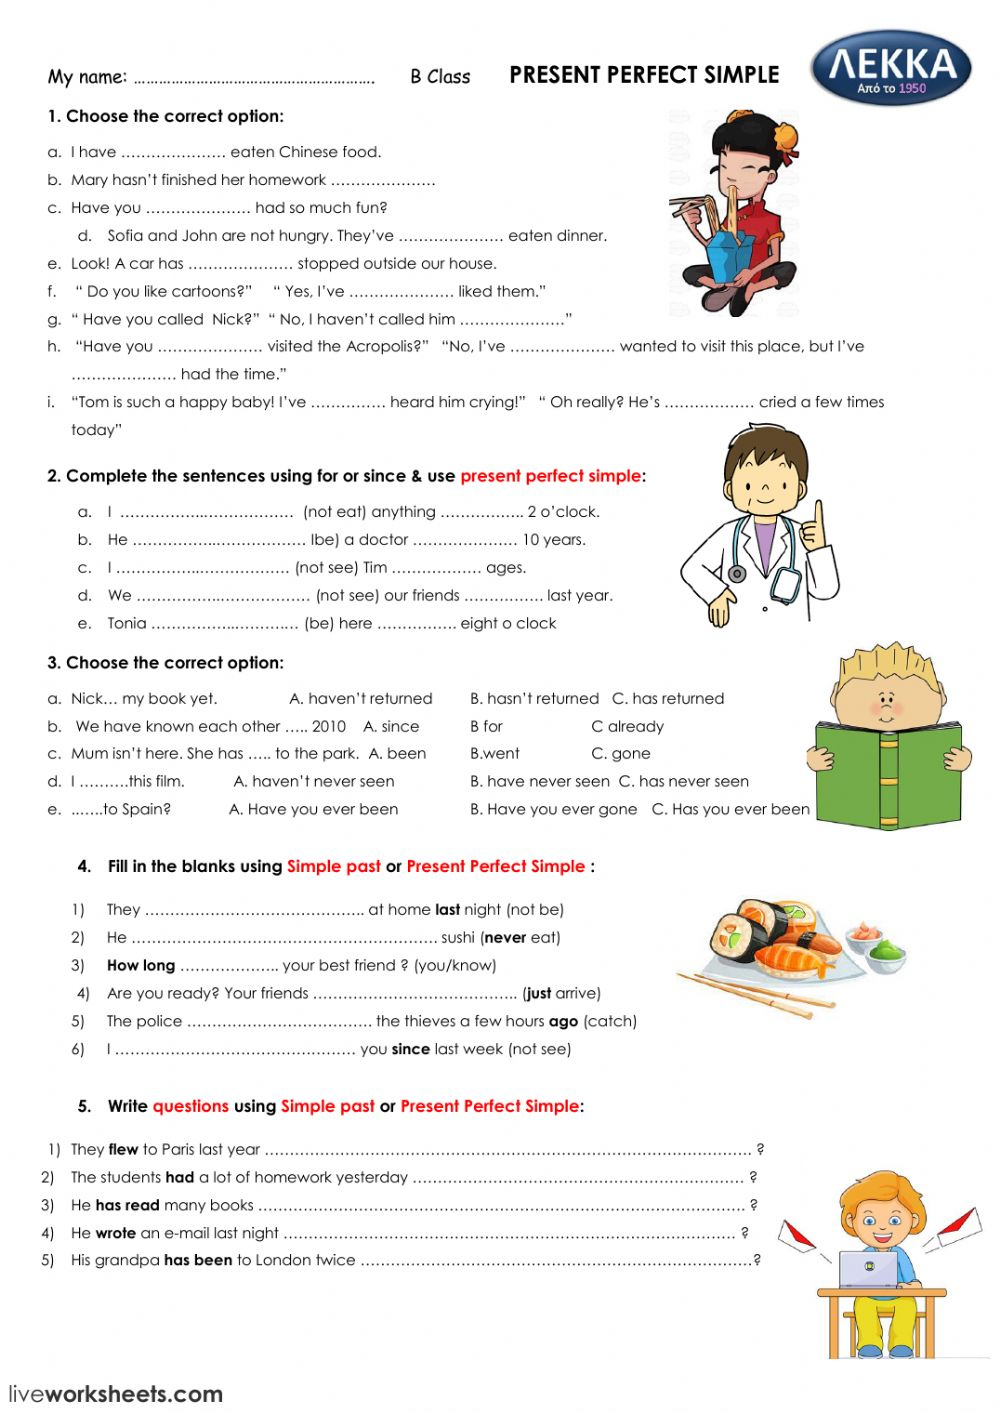 Present Perfect Simple - Interactive worksheet